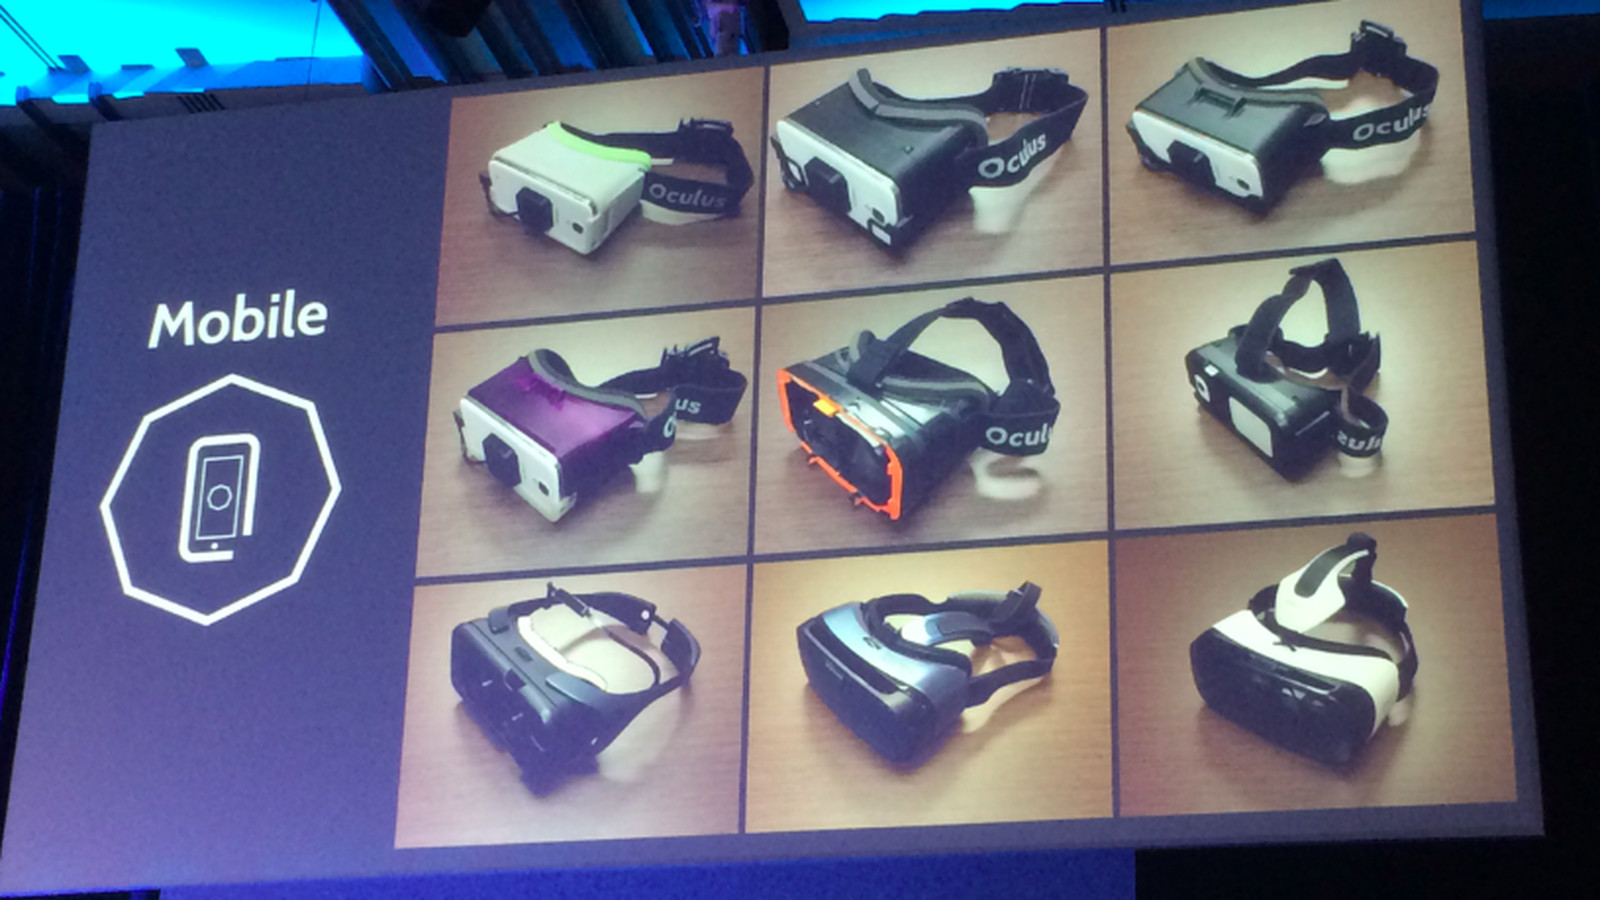 Gear VR is a closed system, Oculus will control the flow